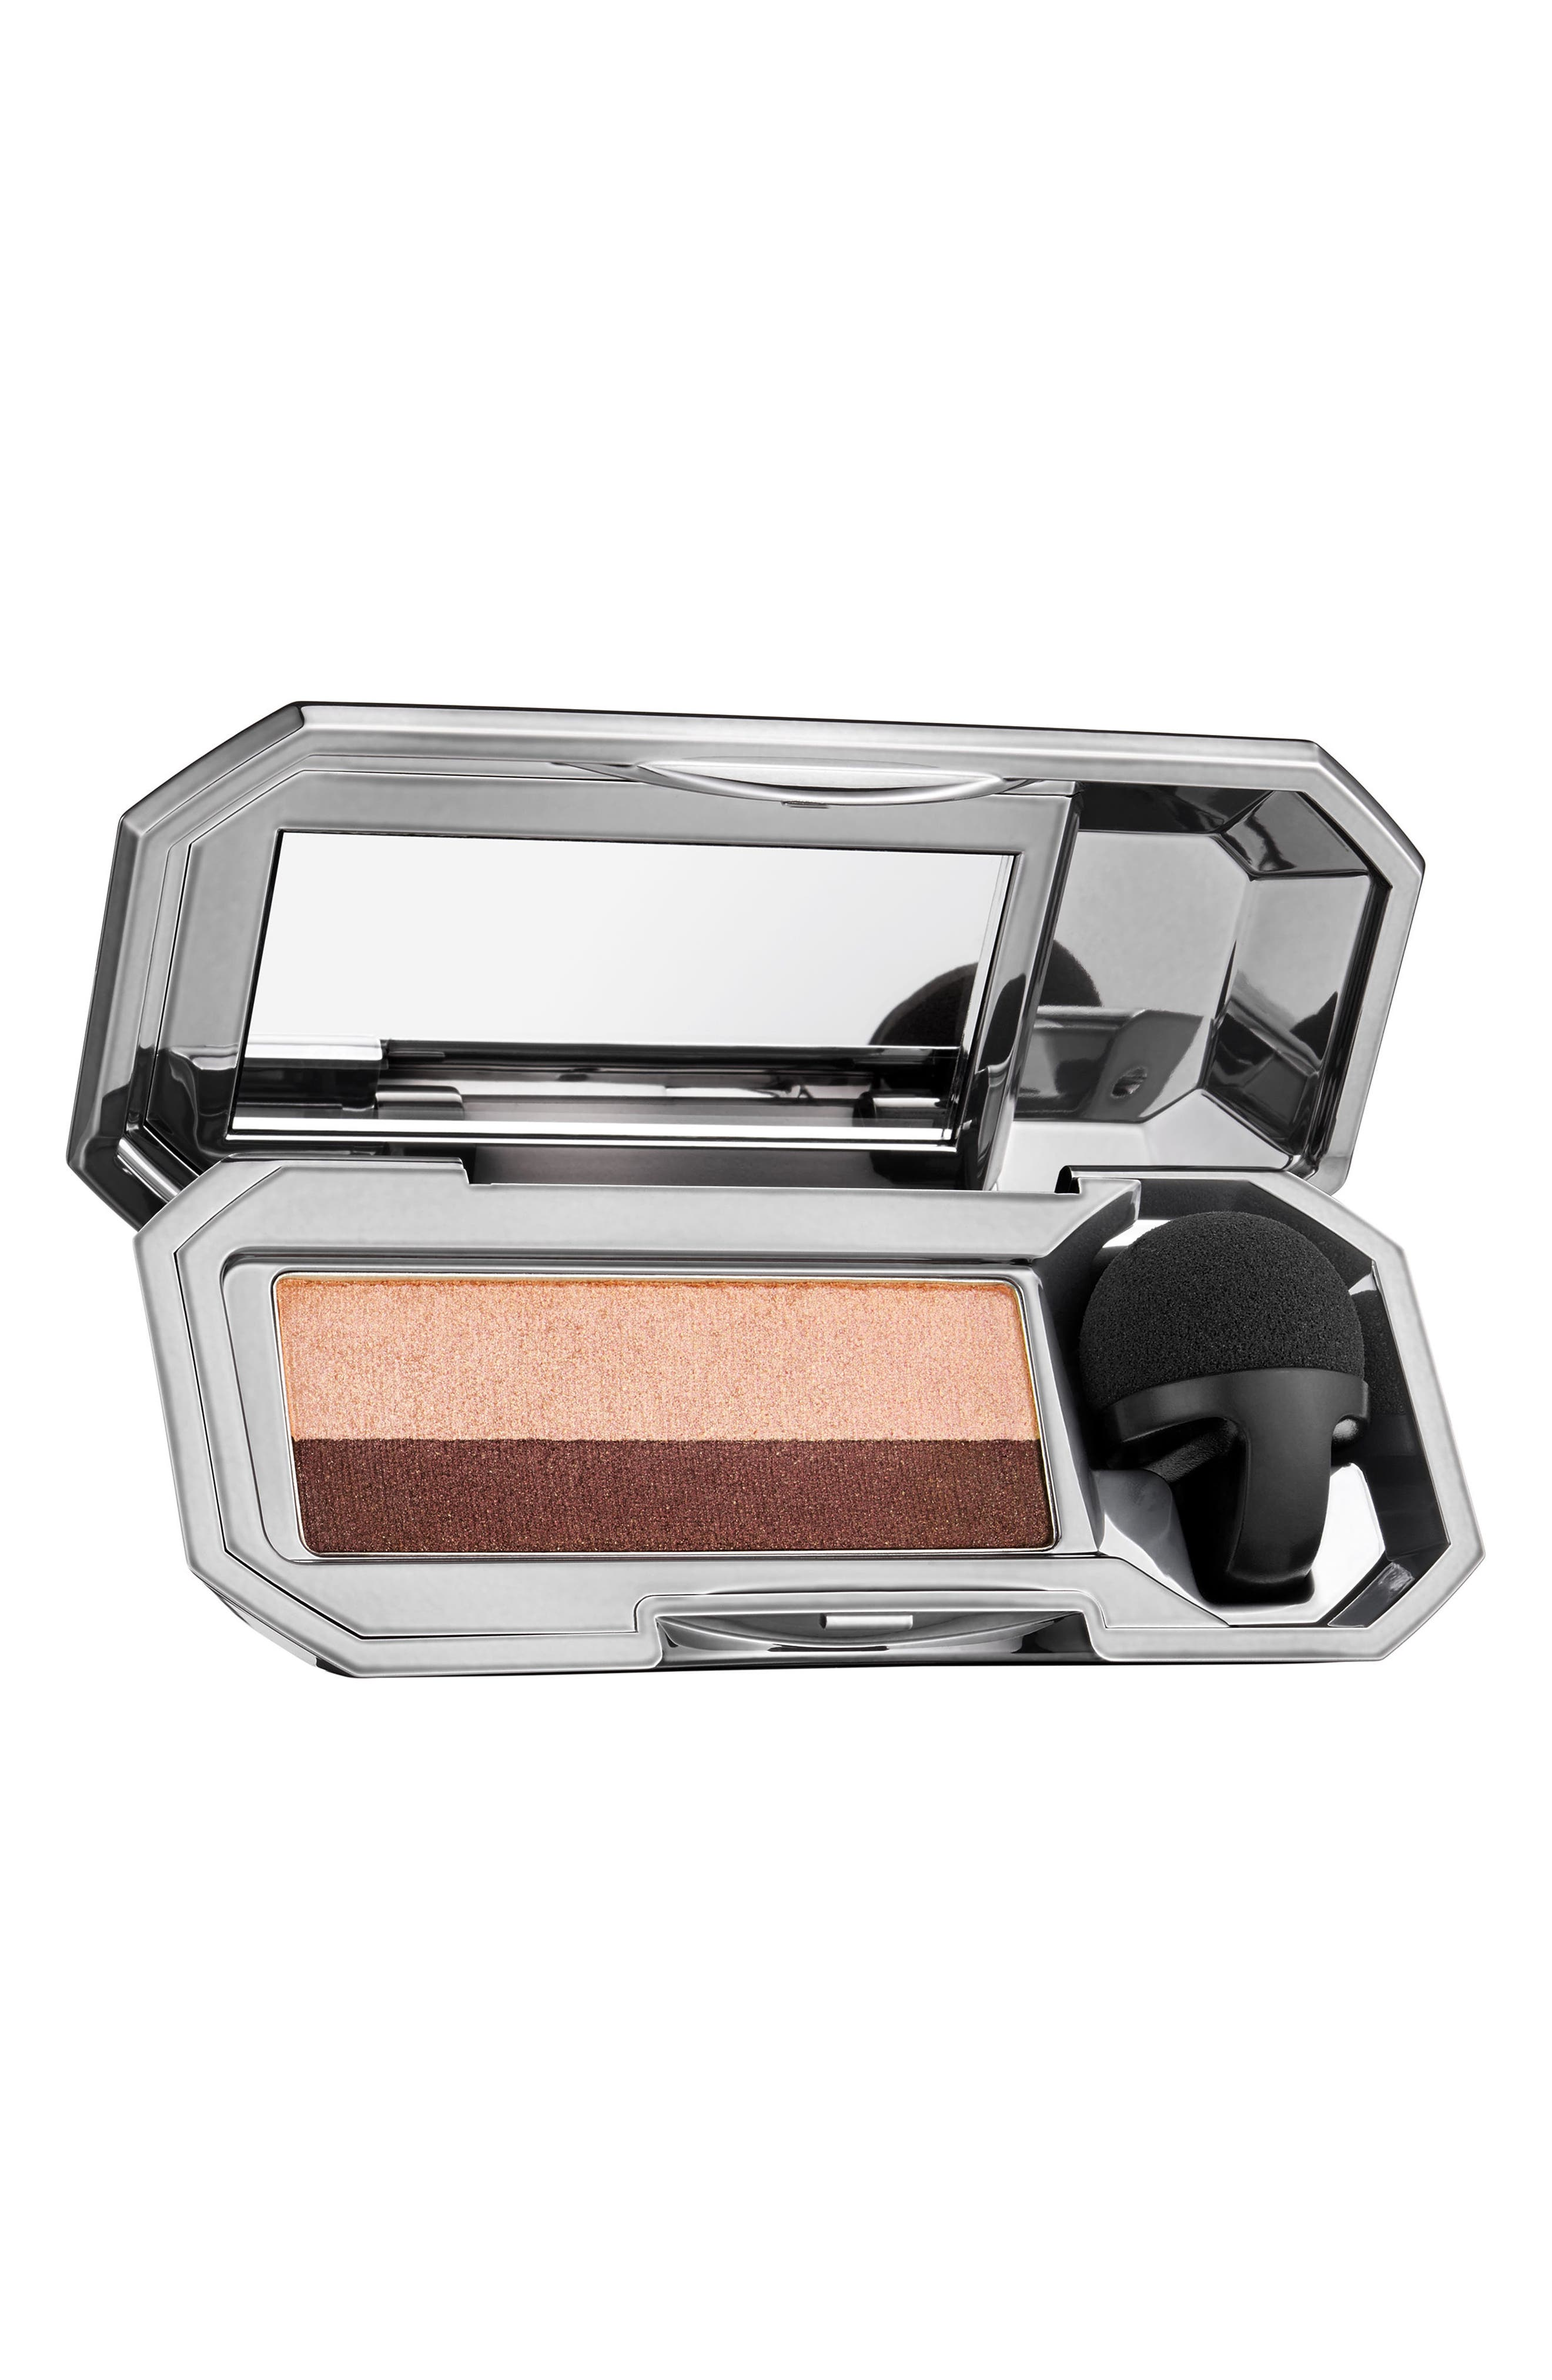 Benefit Cosmetics Benefit They Re Real Eyeshadow Blender